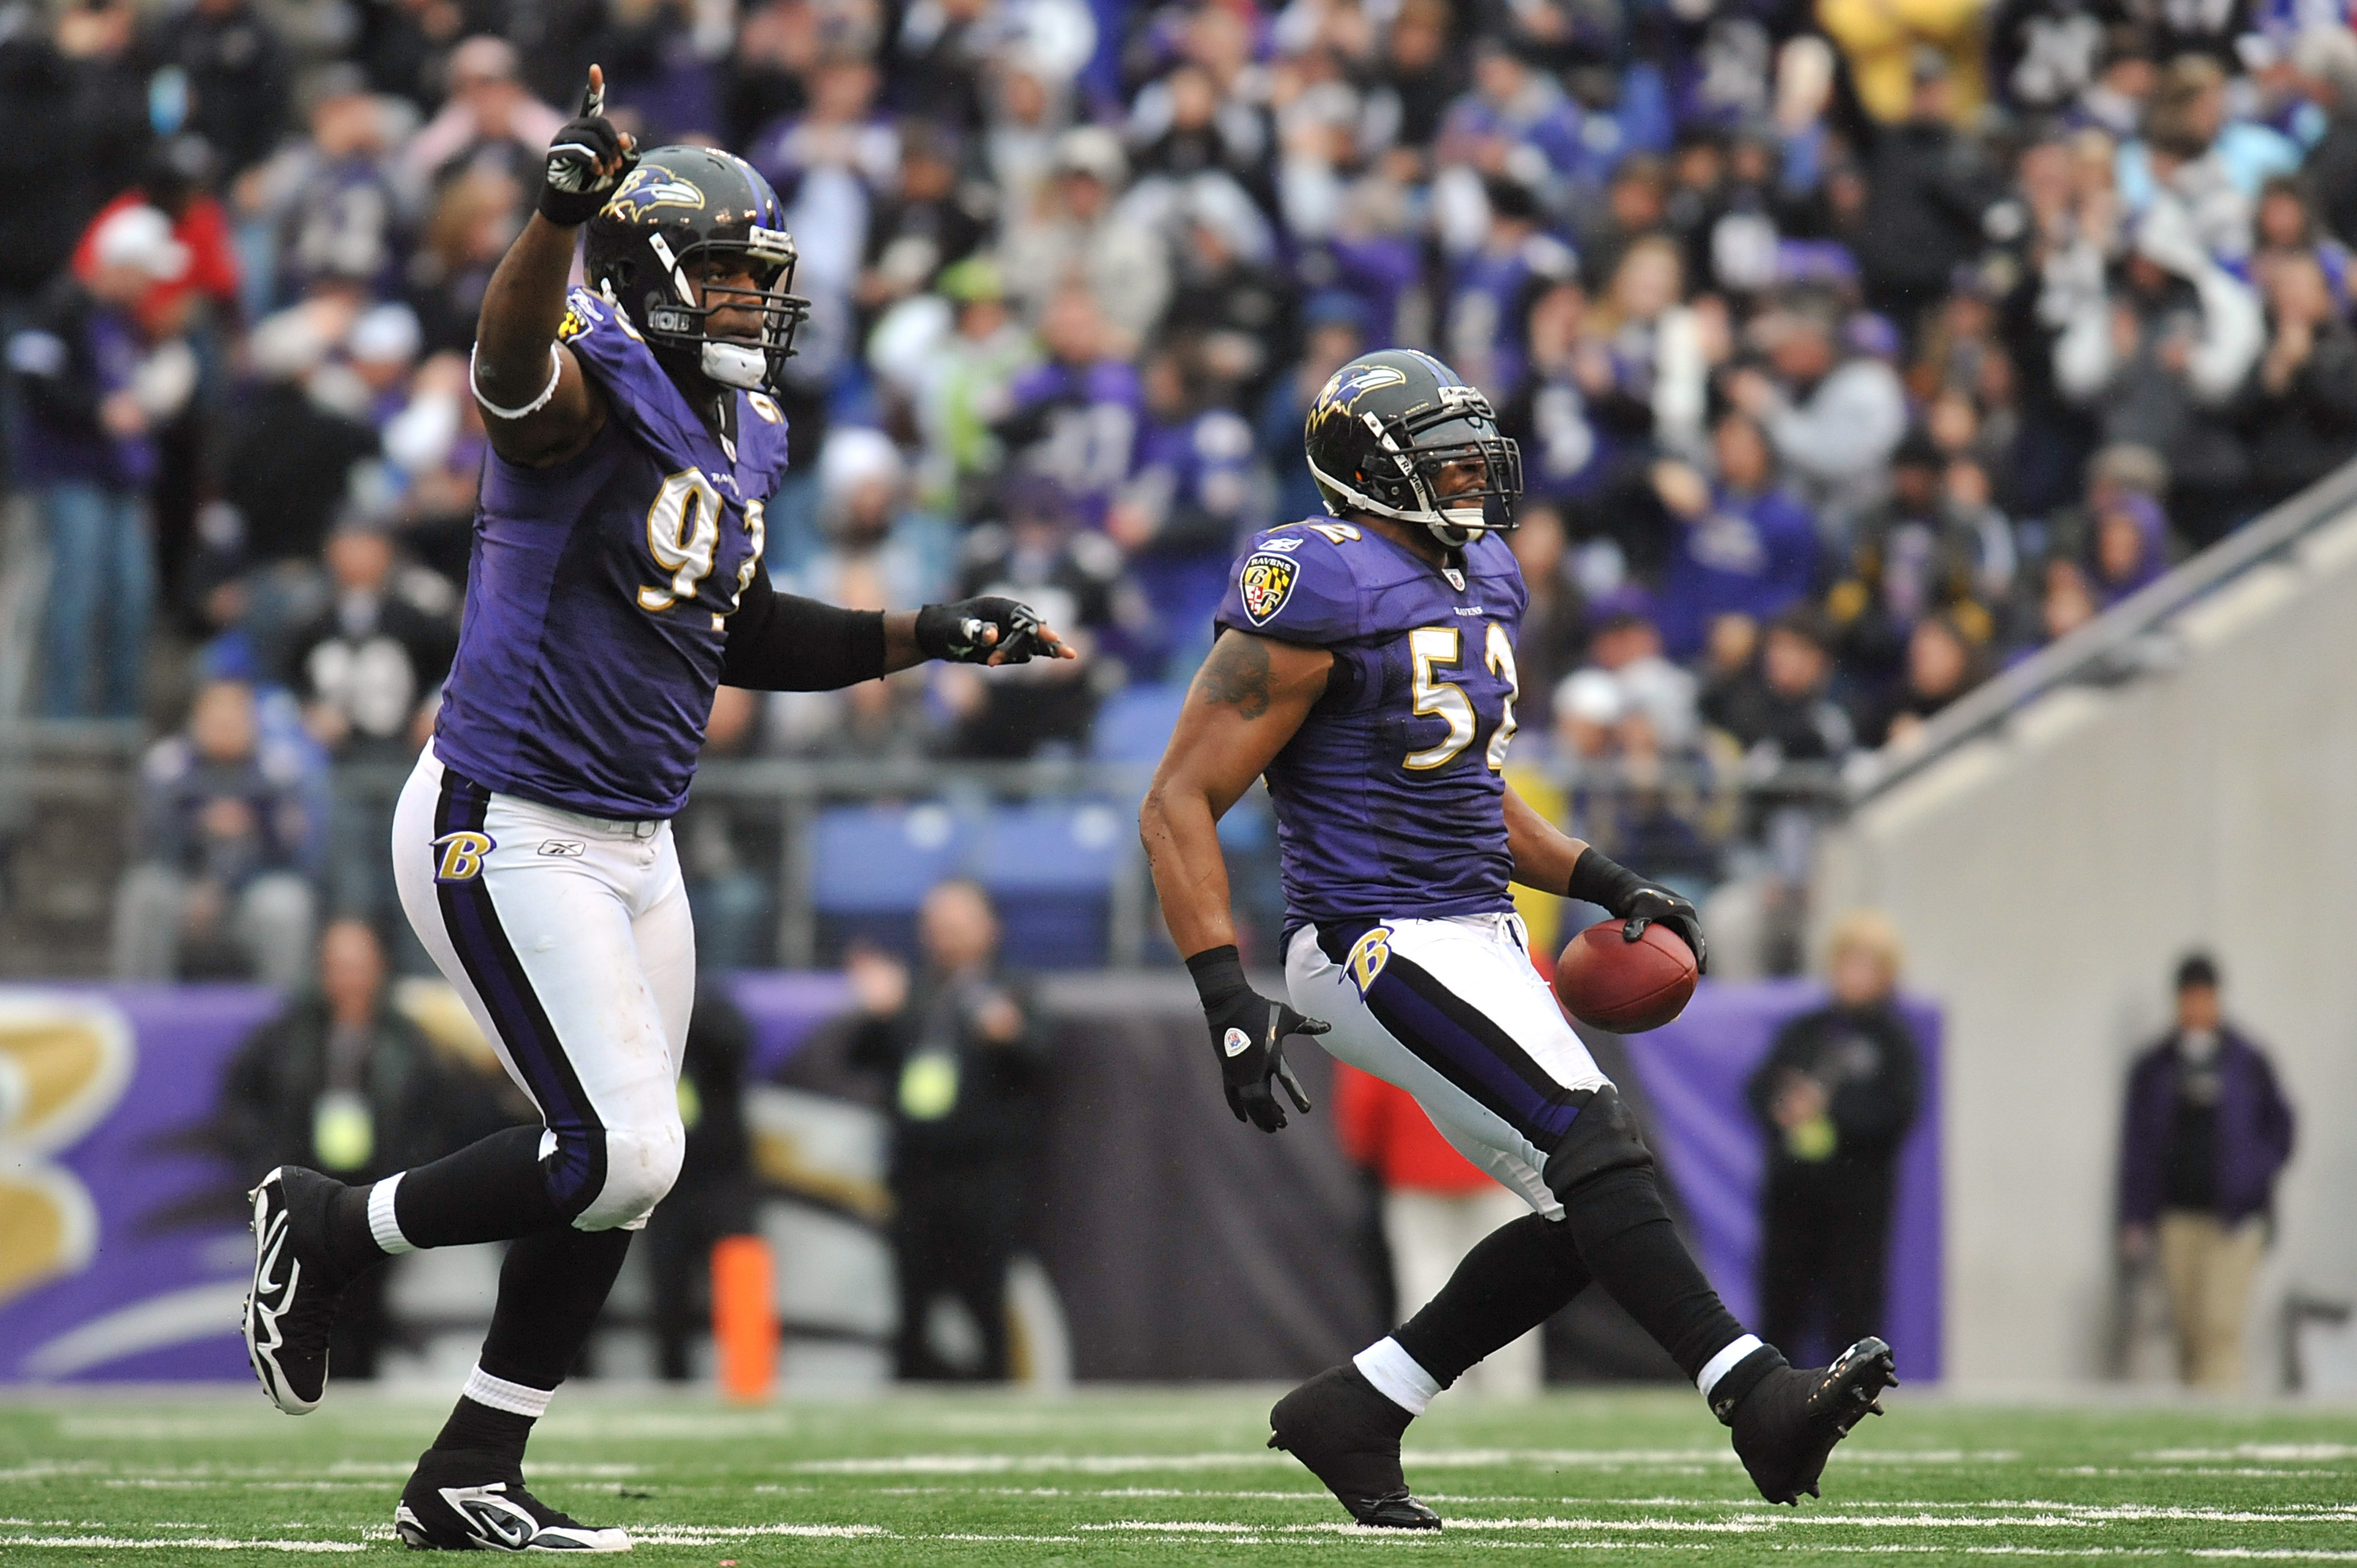 BALTIMORE, MD - JANUARY 2:  Ray Lewis #52 of the Baltimore Ravens celebrates a fumble recovery during the game against the Cincinnati Bengals  at M&T Bank Stadium on January 2, 2011 in Baltimore, Maryland. The Ravens defeated the Bengals 13-6. (Photo by L